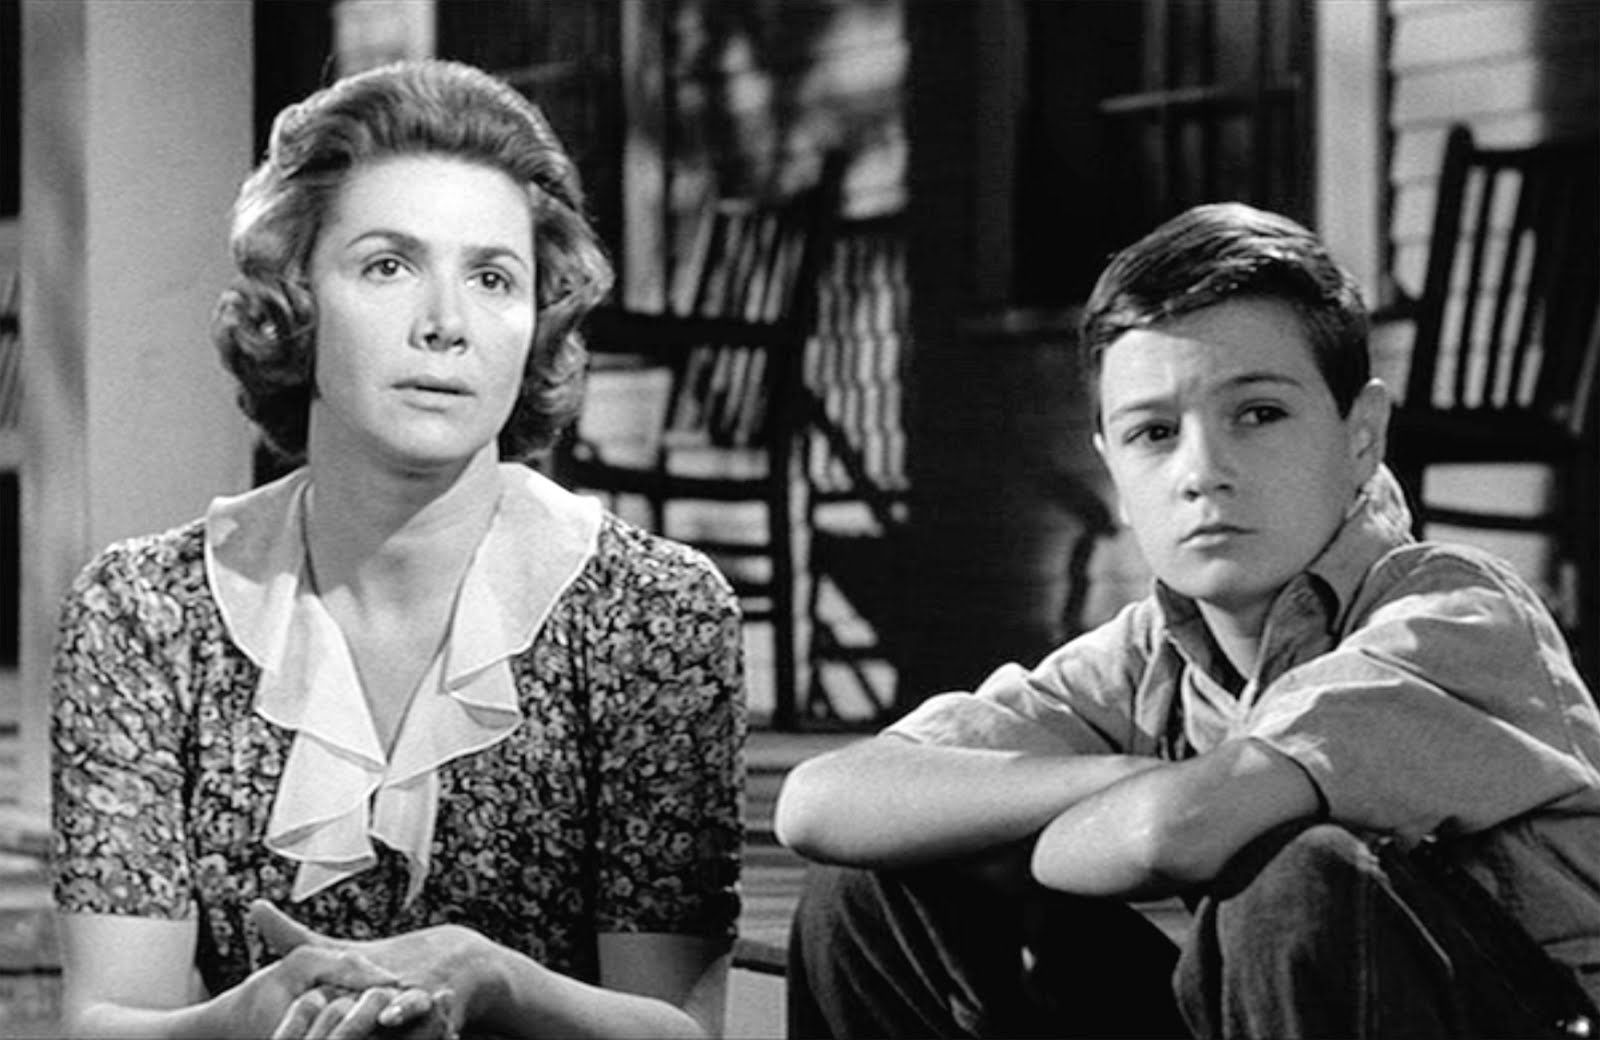 character analysis of jem finch in to kill a mockingbird by harper lee Summary introduction the novel, to kill a mockingbird, published in 1960 has remained one of the most enormously popular novels of harper lee the novel is about.